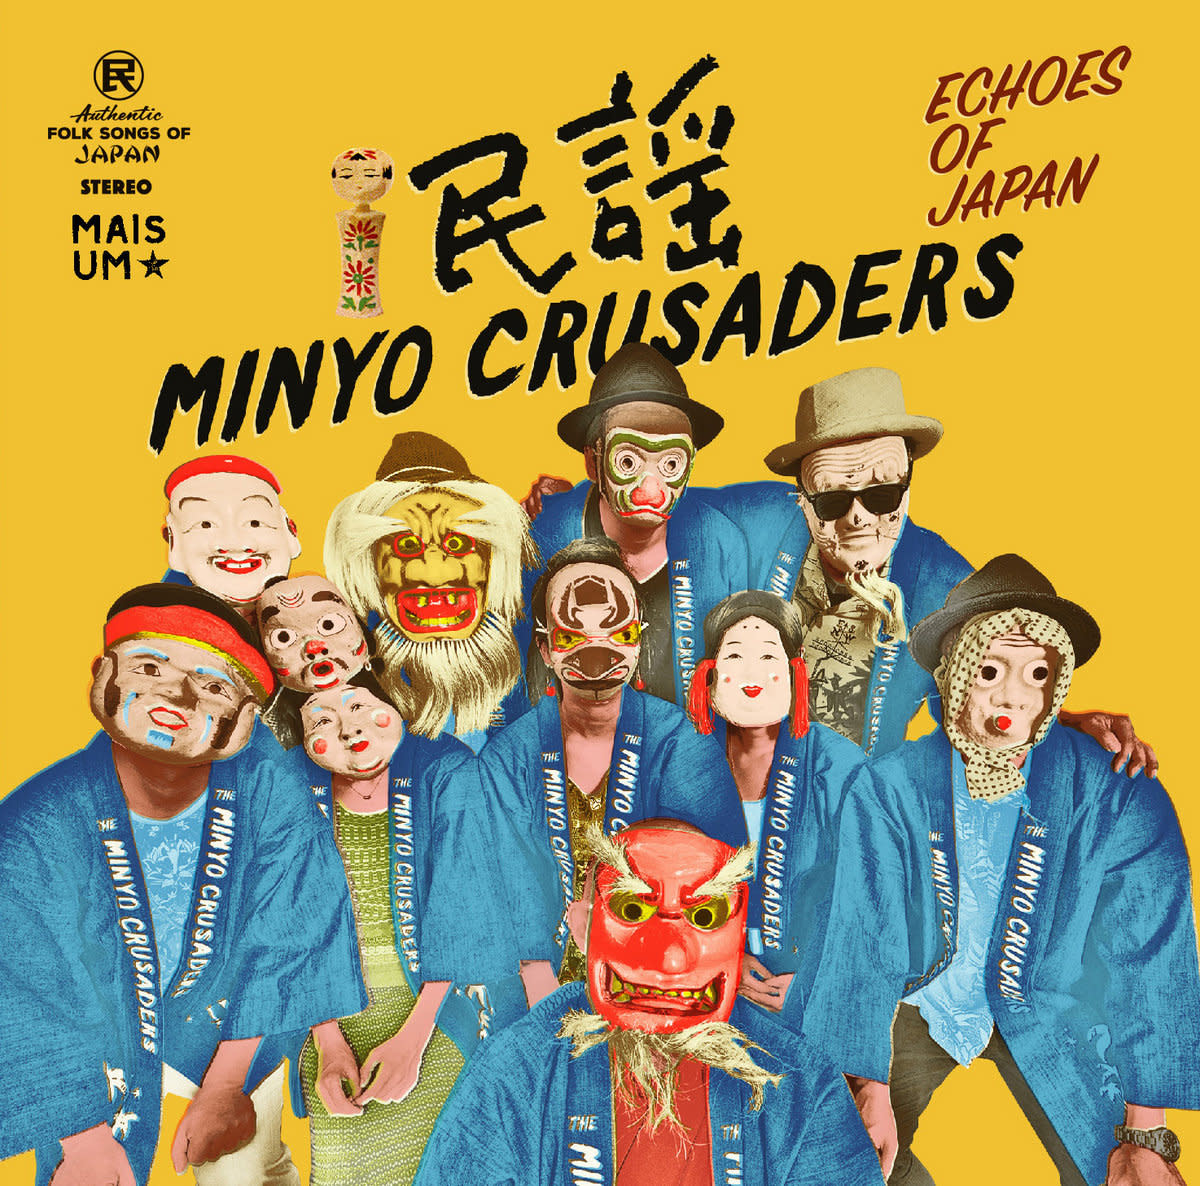 Minyo Crusaders • Echoes Of Japan-1